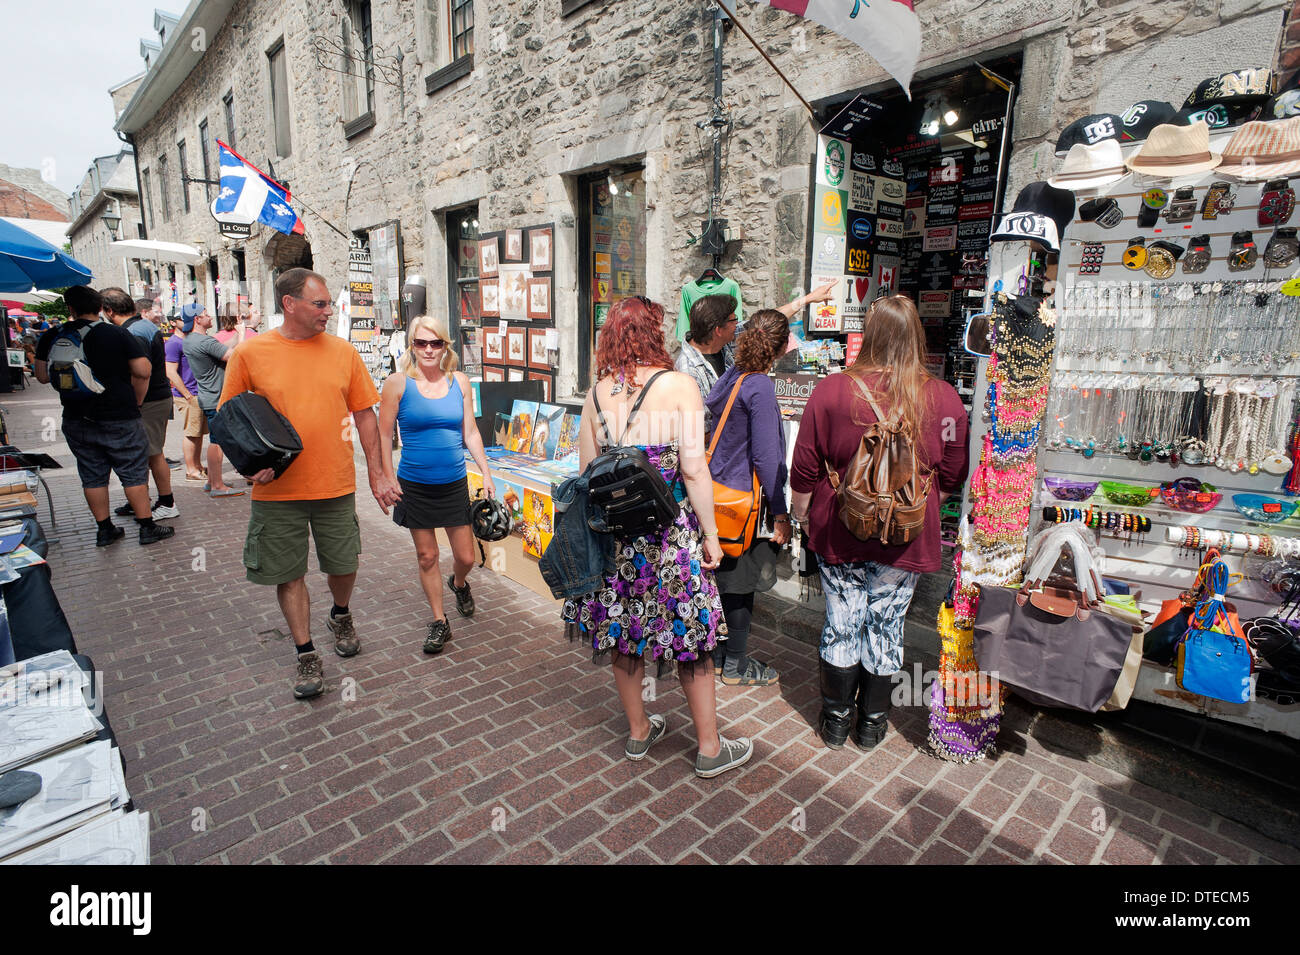 Visitors walking on St-Amable street, Old Montreal, province of Quebec, Canada. - Stock Image